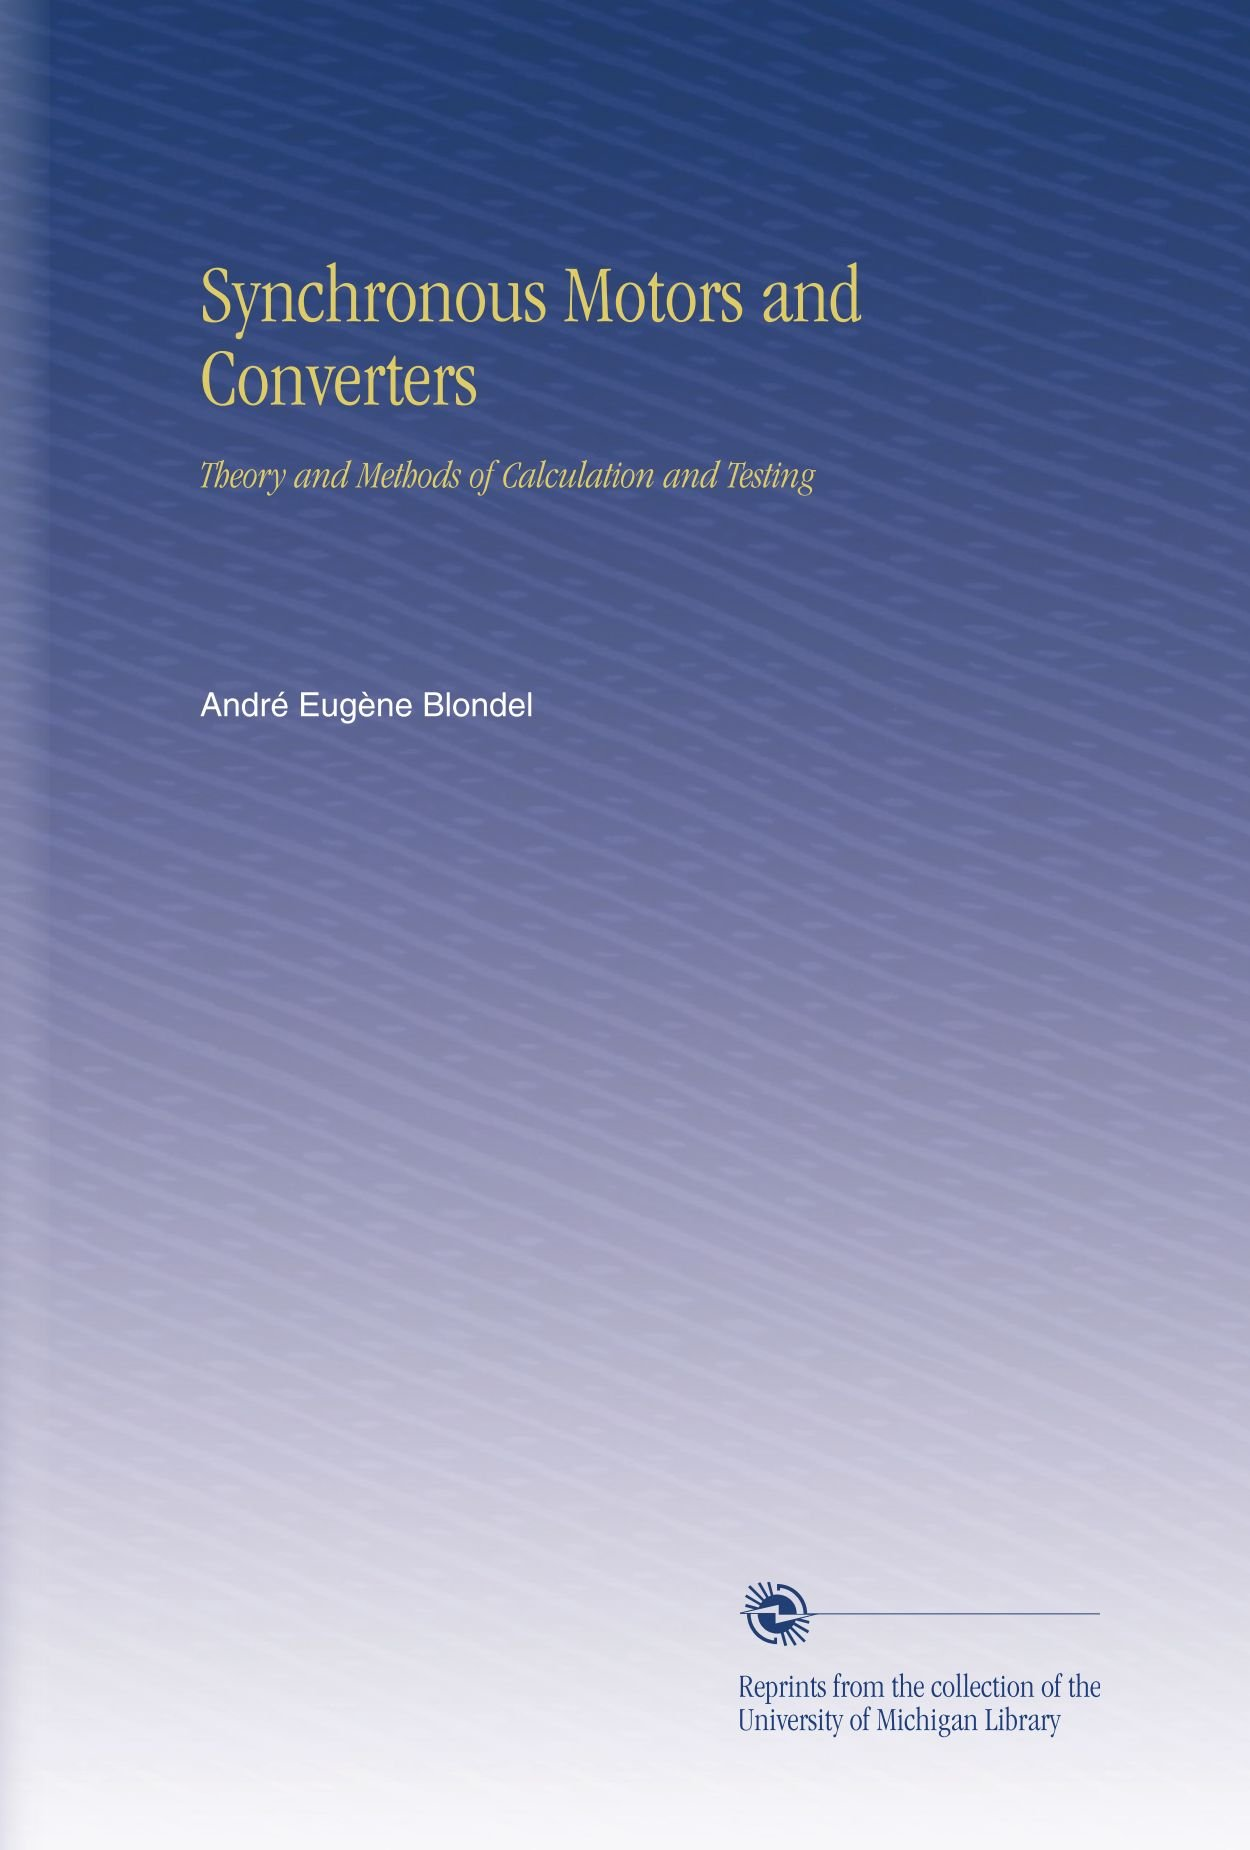 Synchronous Motors and Converters: Theory and Methods of Calculation and Testing pdf